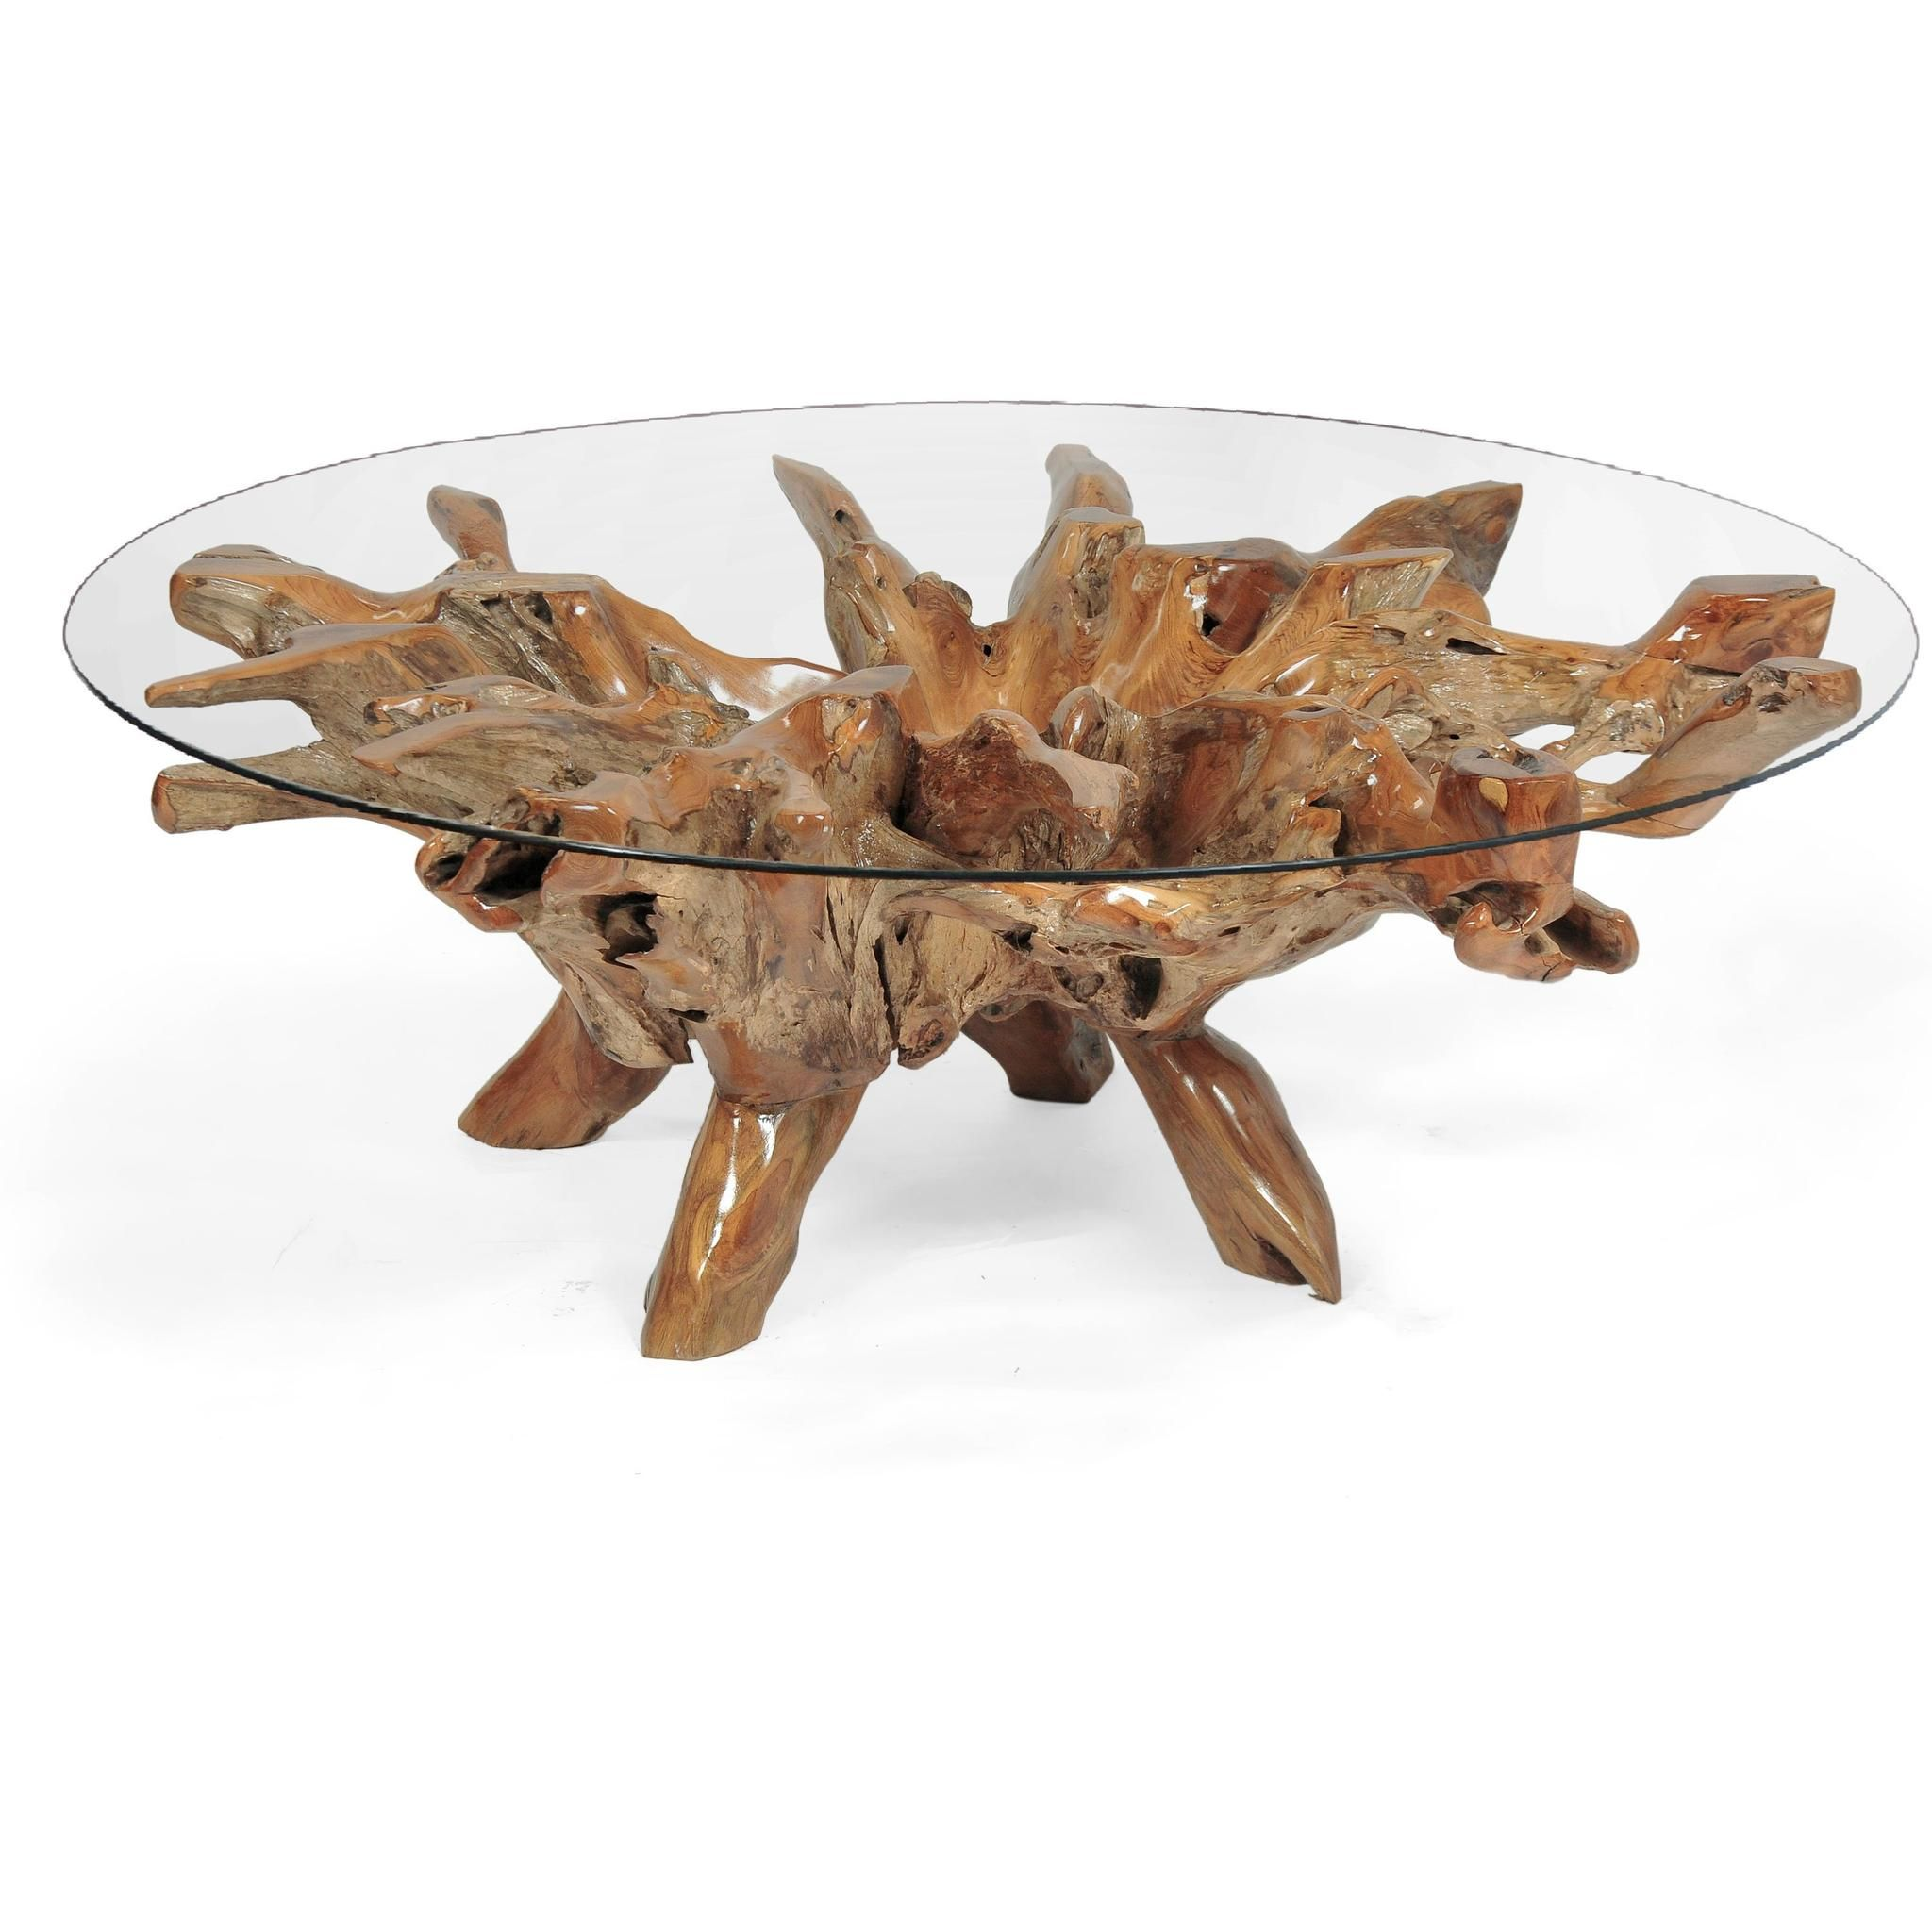 Teak Wood Root Coffee Table Including 55 Inch Round Glass Top Coffee Table Rustic Coffee Tables Organic Coffee Table [ 2048 x 2048 Pixel ]